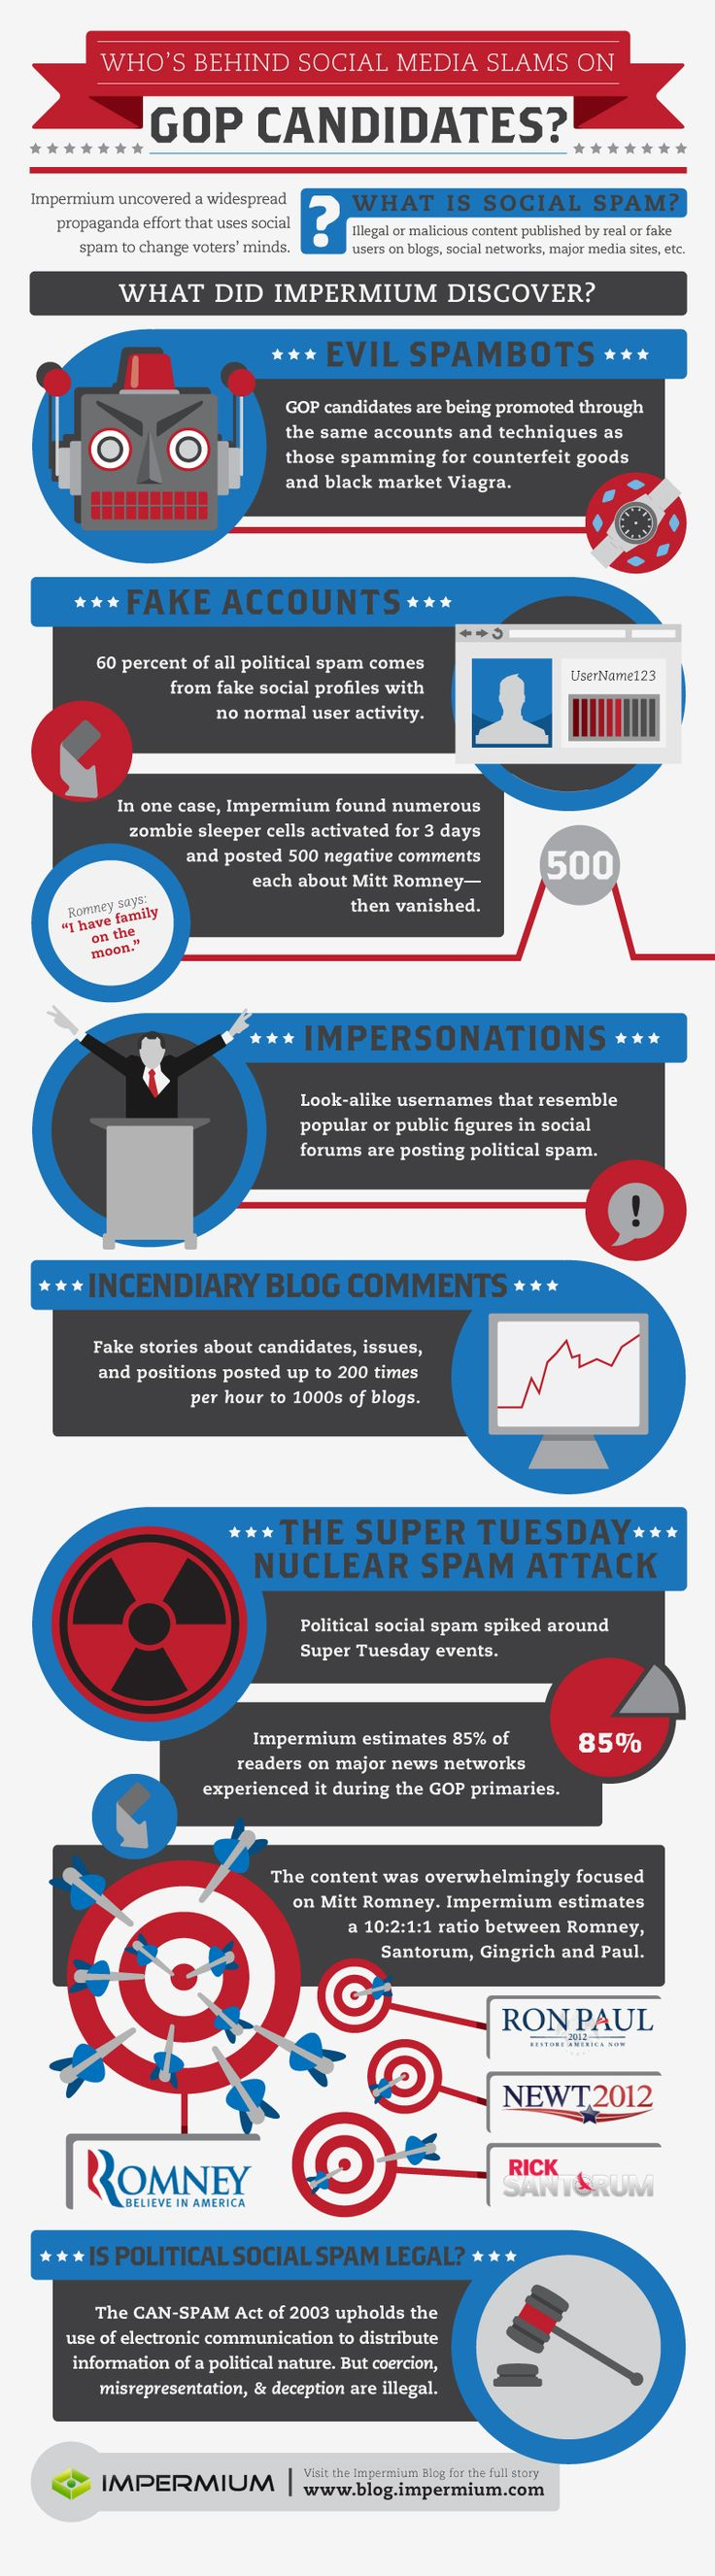 Social Media Spam Is Slamming Republican Candidates [INFOGRAPHIC]